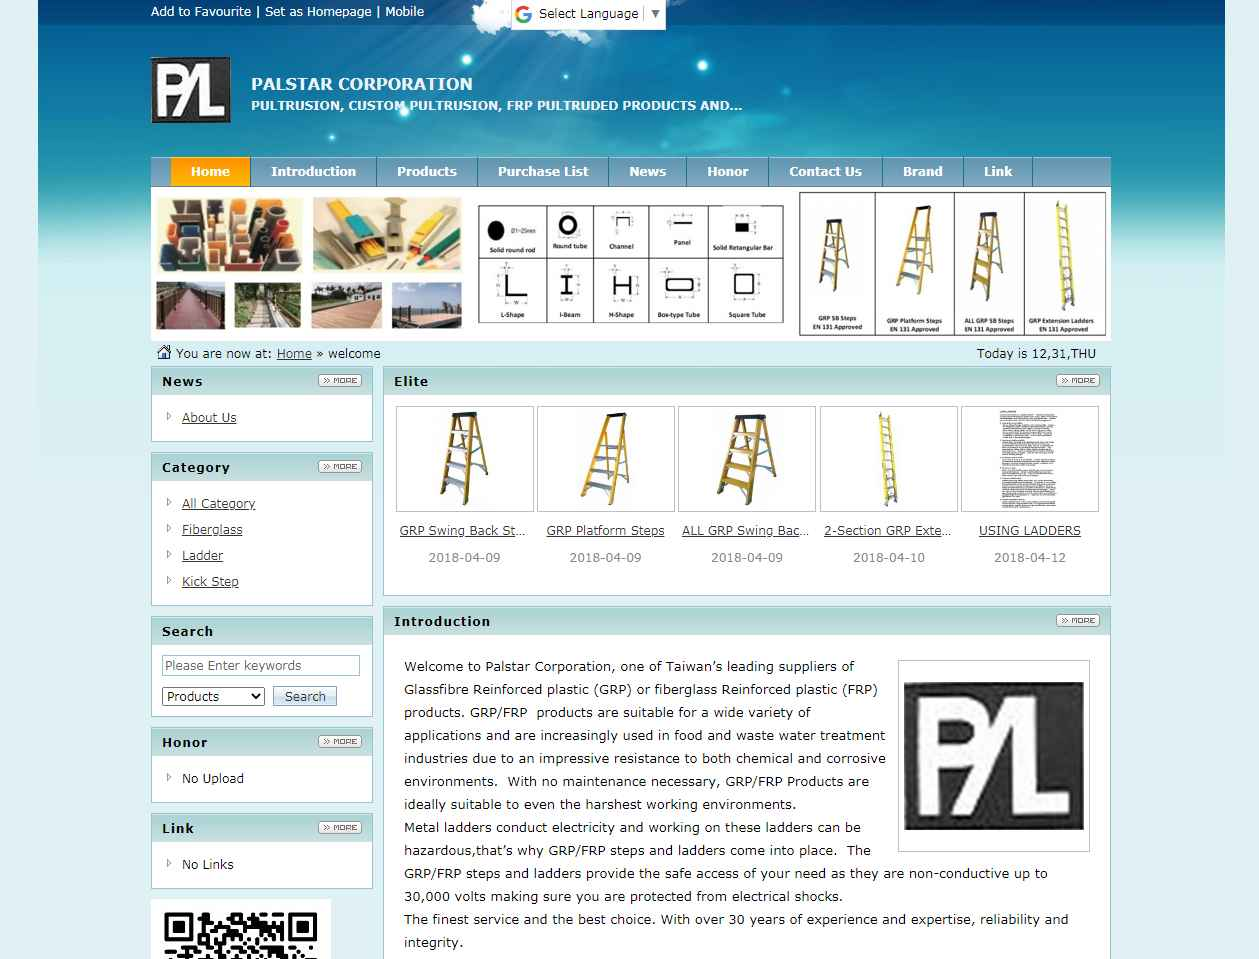 2-section grp extension ladder manufactu